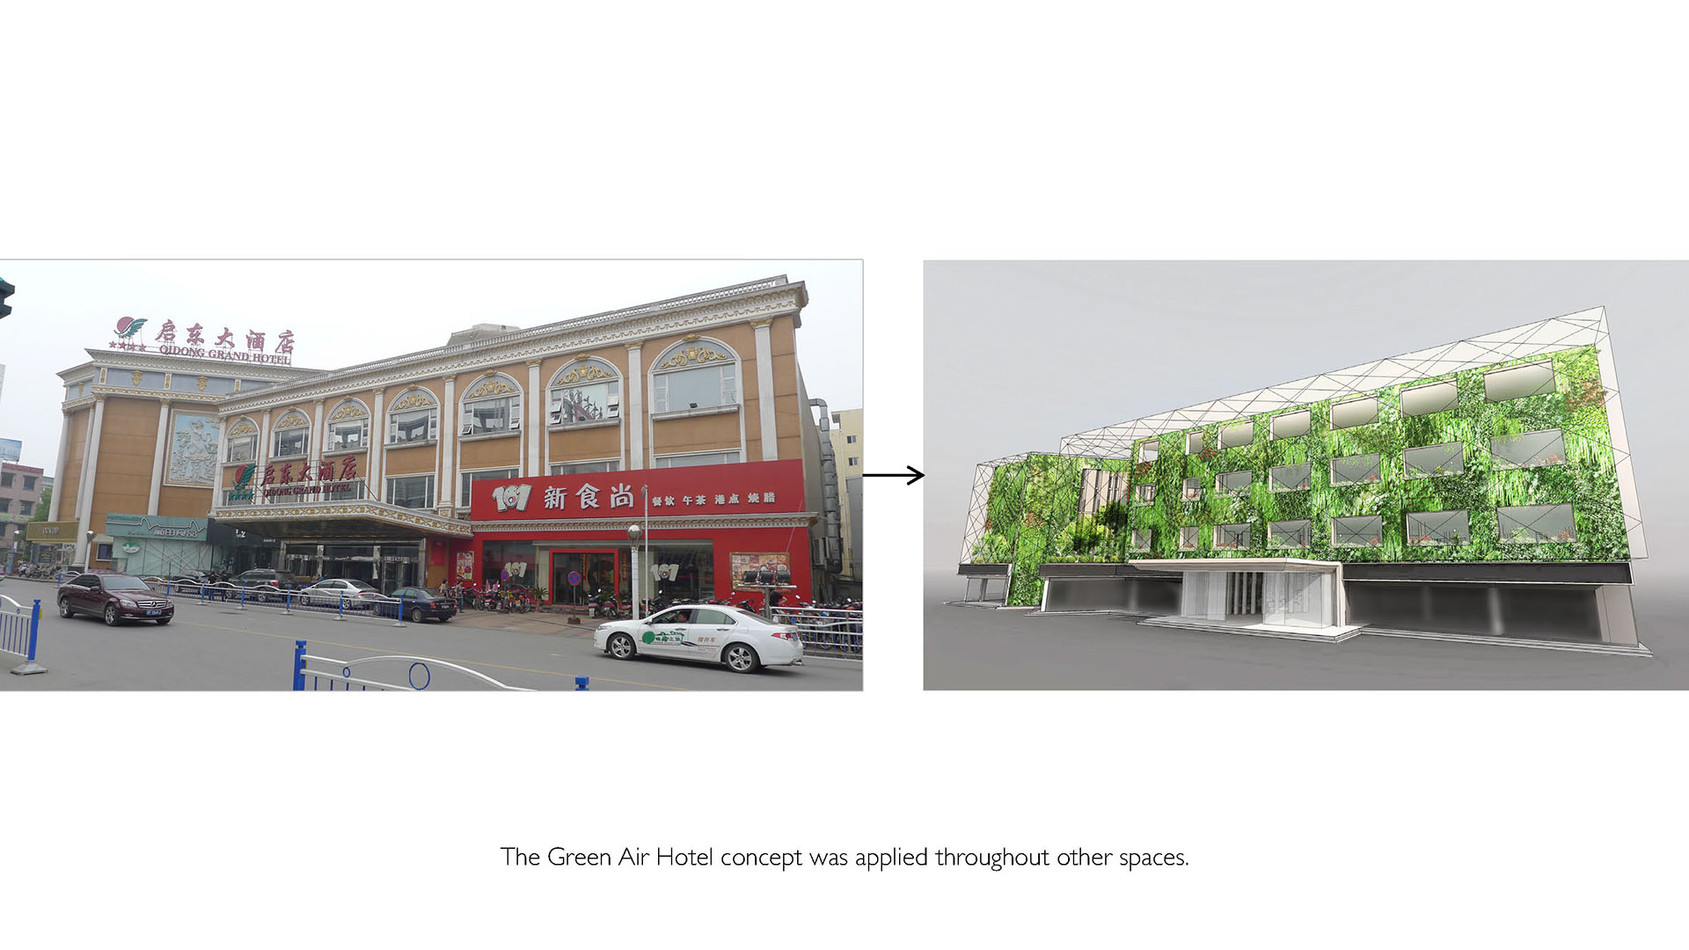 QIDONG-GREEN-AIR-HOTEL-EN 05.jpg